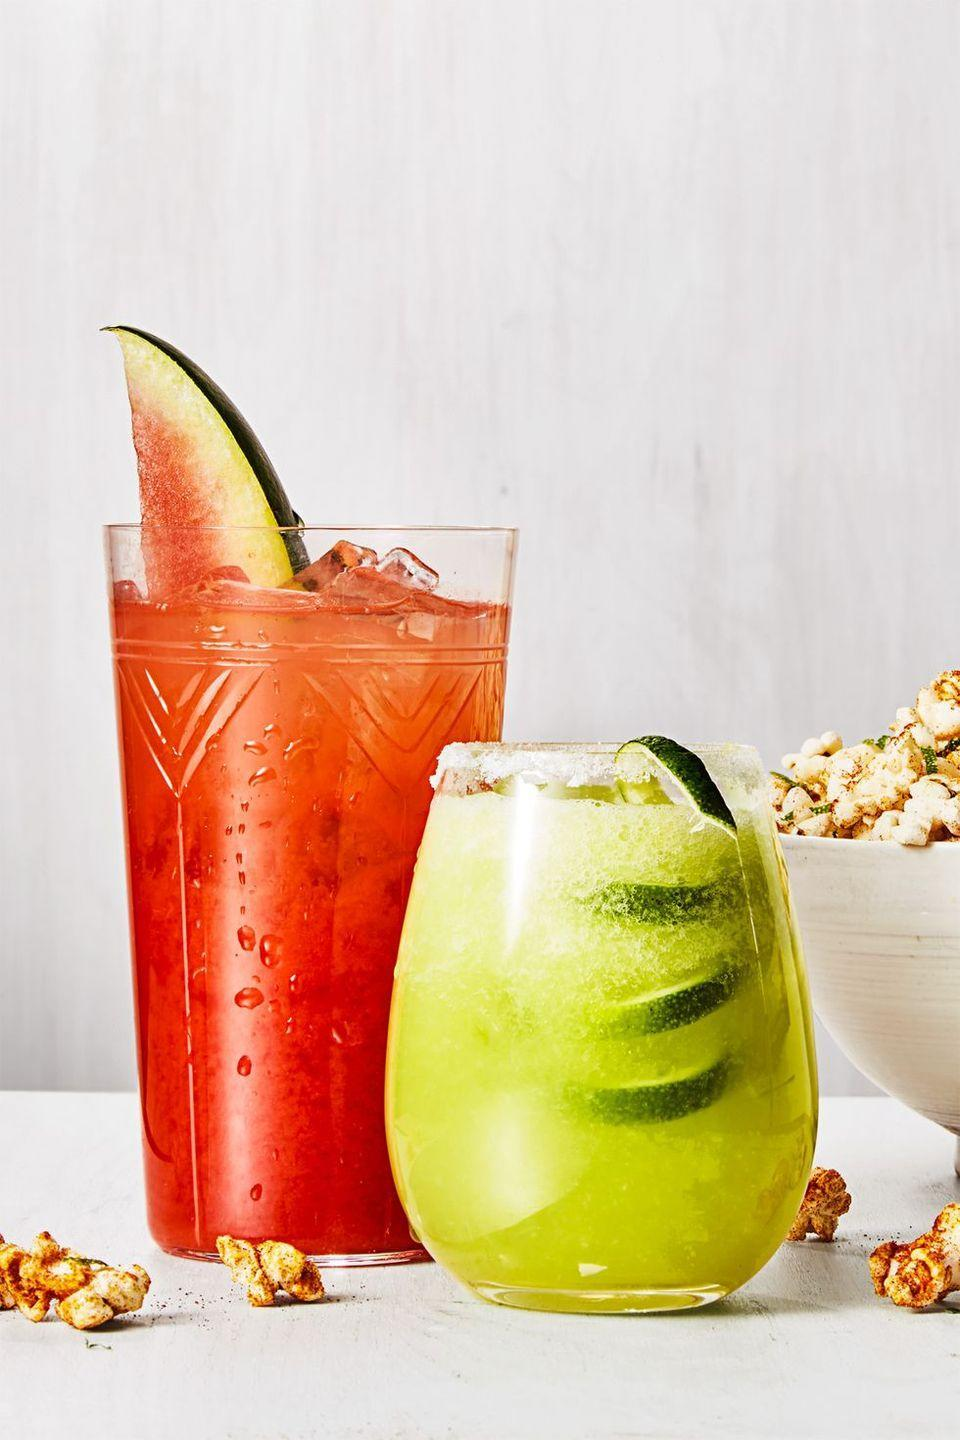 """<p>Light and fruity, you can enjoy these recipes all summer long. Both the tangy honeydew margarita and the sweet watermelon rum punch are equally refreshing served separately, but together you have a warm-weather treat that will satisfy everyone's taste.</p><p><em><a href=""""https://www.goodhousekeeping.com/food-recipes/a44182/honeydew-margarita-recipe/"""" rel=""""nofollow noopener"""" target=""""_blank"""" data-ylk=""""slk:Get the recipe for Honeydew Margarita »"""" class=""""link rapid-noclick-resp"""">Get the recipe for Honeydew Margarita »</a></em></p><p><em><em><a href=""""https://www.goodhousekeeping.com/food-recipes/a44185/watermelon-rum-punch-recipe/"""" rel=""""nofollow noopener"""" target=""""_blank"""" data-ylk=""""slk:Get the recipe for Watermelon Rum Punch »"""" class=""""link rapid-noclick-resp"""">Get the recipe for Watermelon Rum Punch »</a></em></em></p>"""